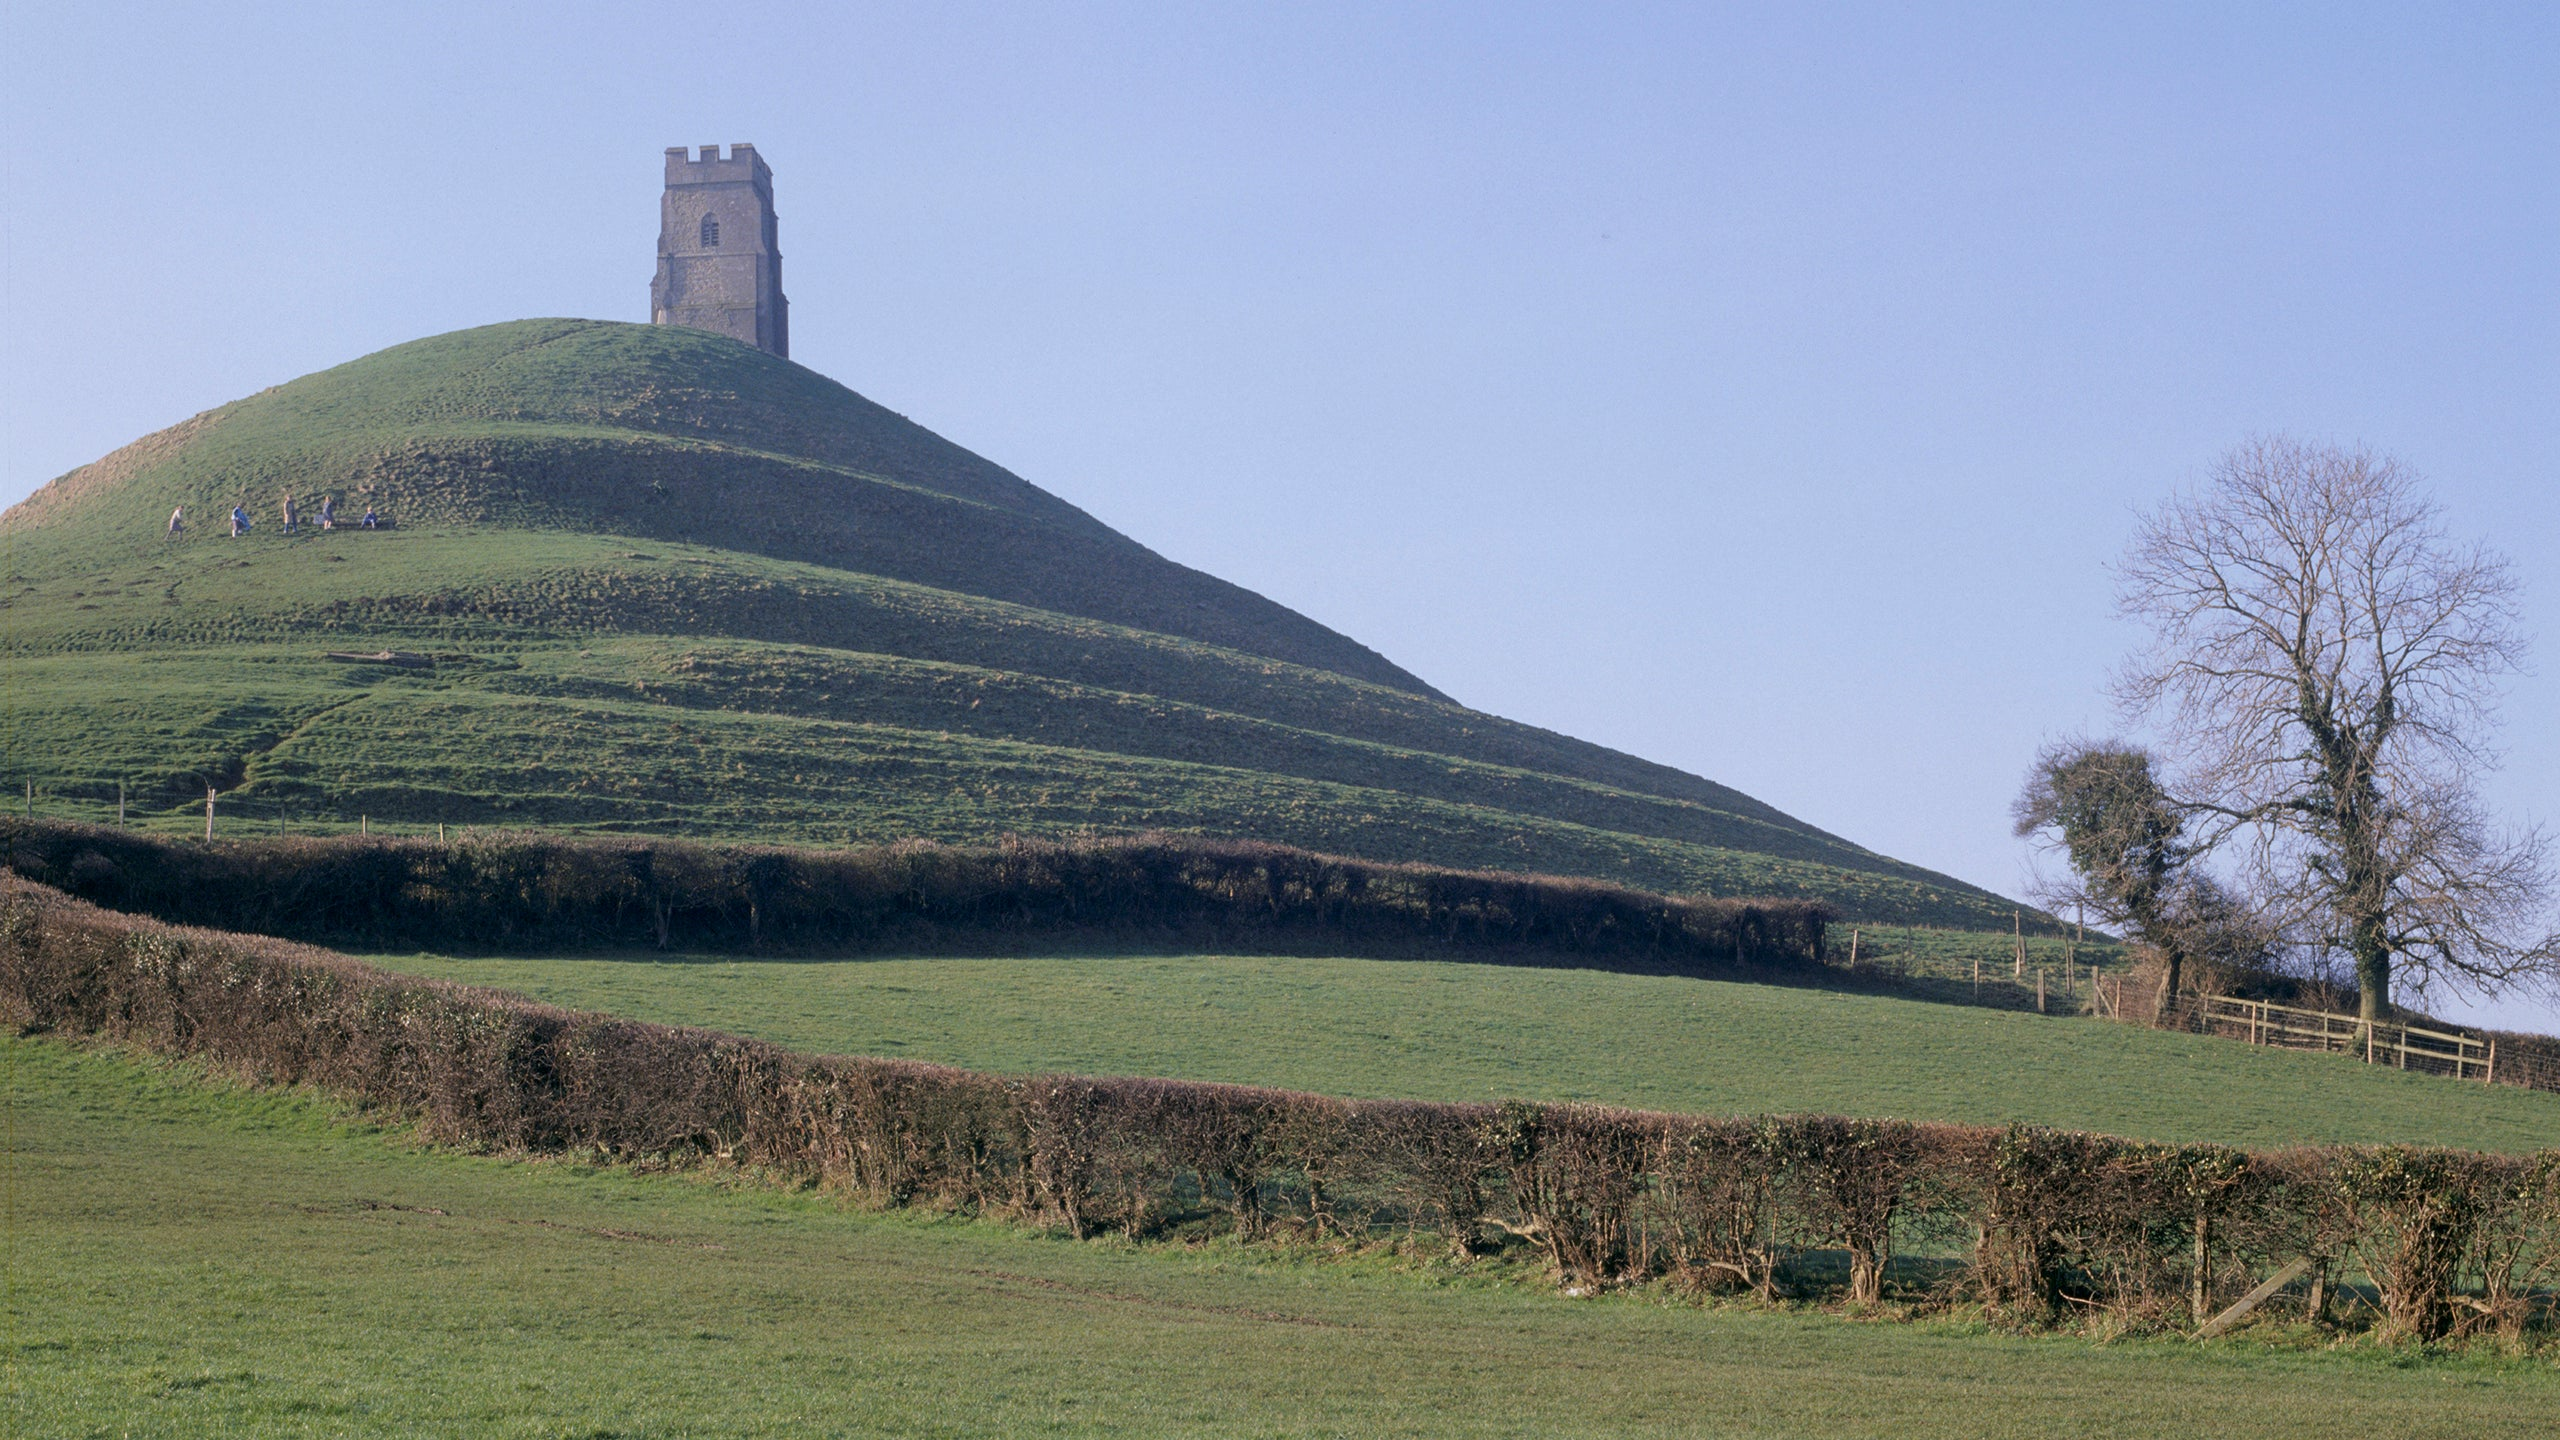 A view across a field to Glastonbury Tor, Somerset, with the remains of the 15th century tower at the summit